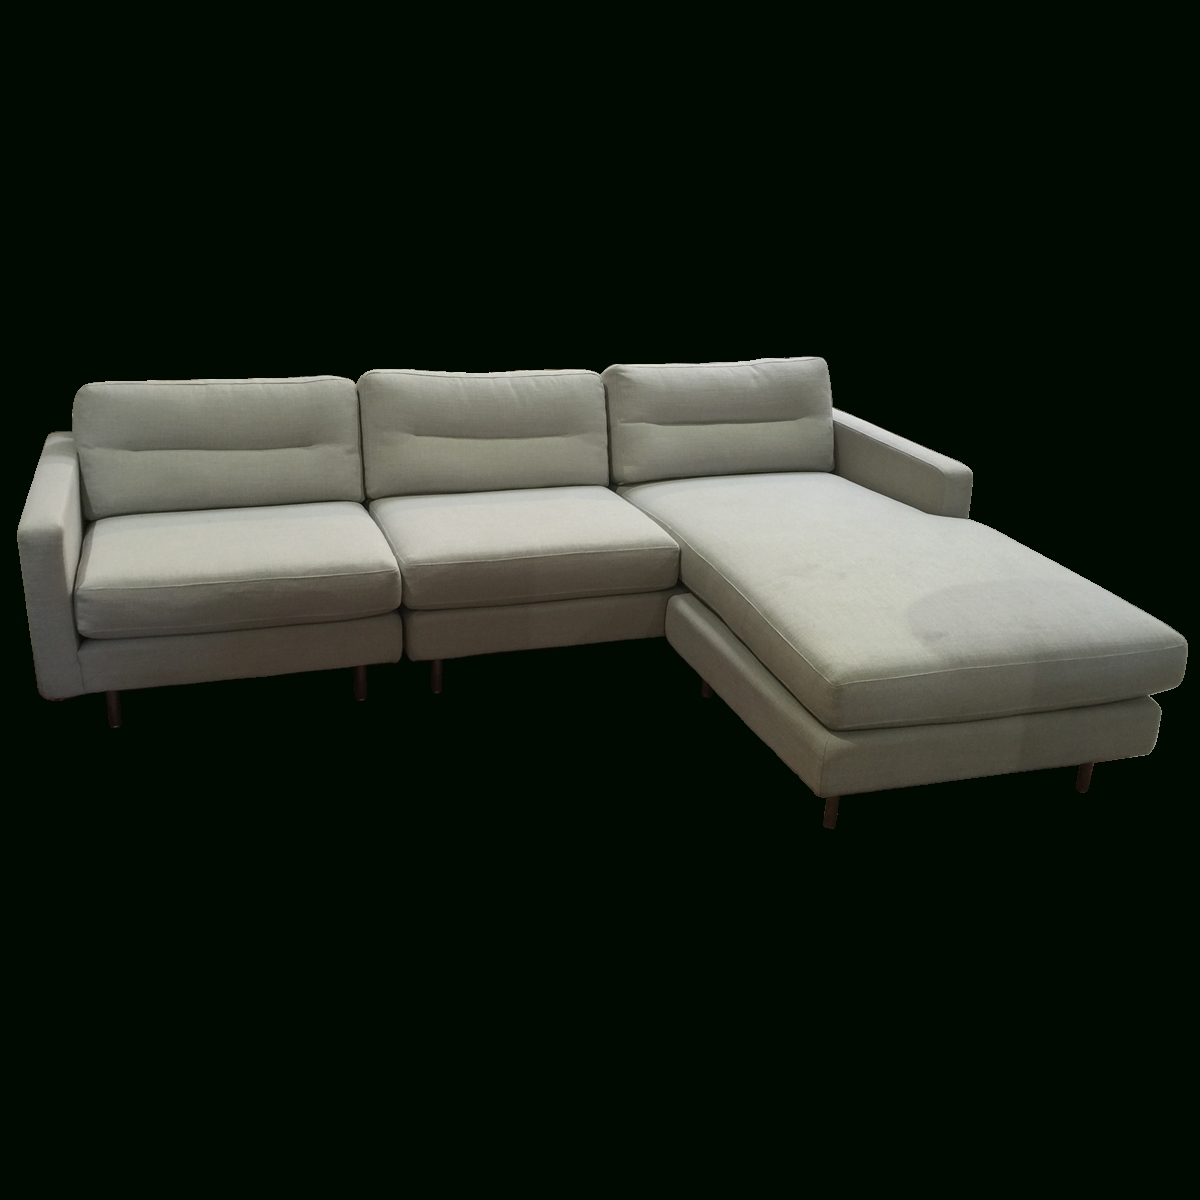 Viyet - Designer Furniture - Seating - Gus Logan Bi-Sectional Sofa within Bisectional Sofa (Image 30 of 30)